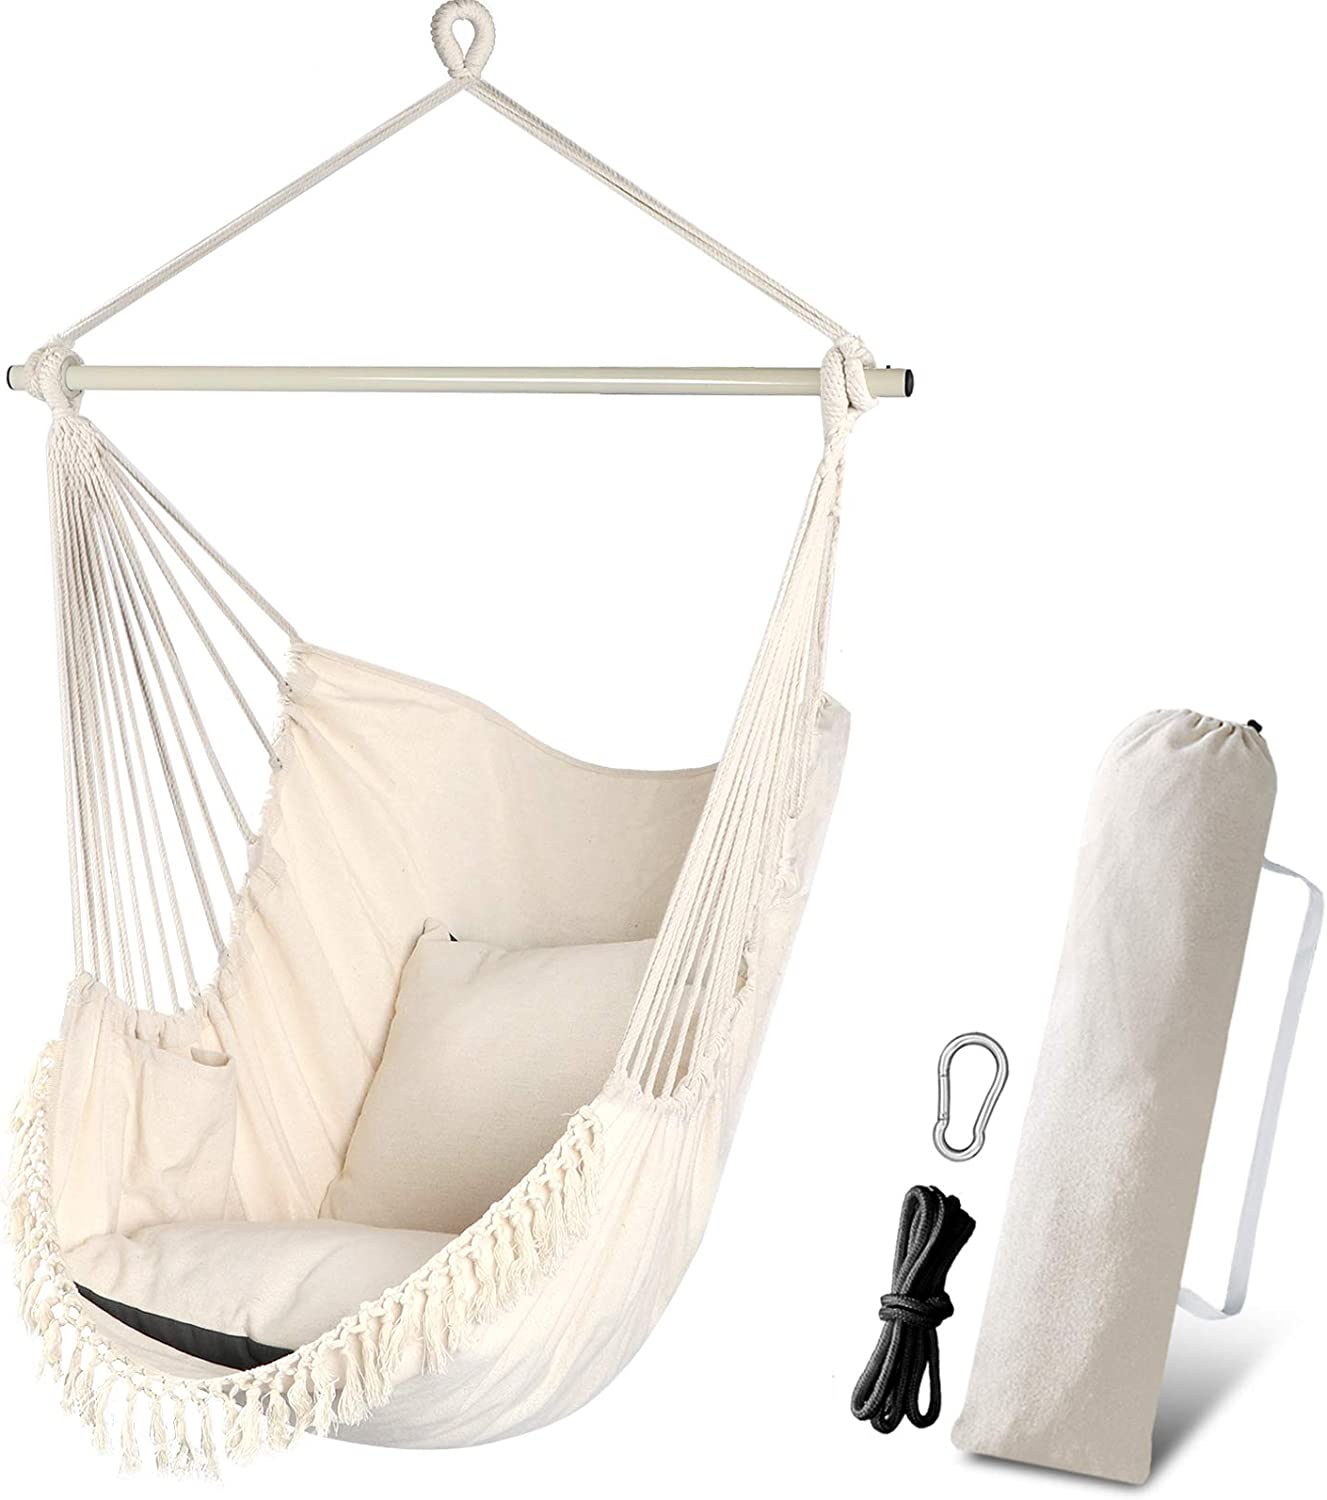 Chihee Hammock Chair Swing 2 Pillows Included,Hanging Chair Durable Metal Spreader Bar Side Pocket Large Hanging Macrame Chair Set Cotton Weave Seat for Soft Comfort Home Garden Indoor Outdoor